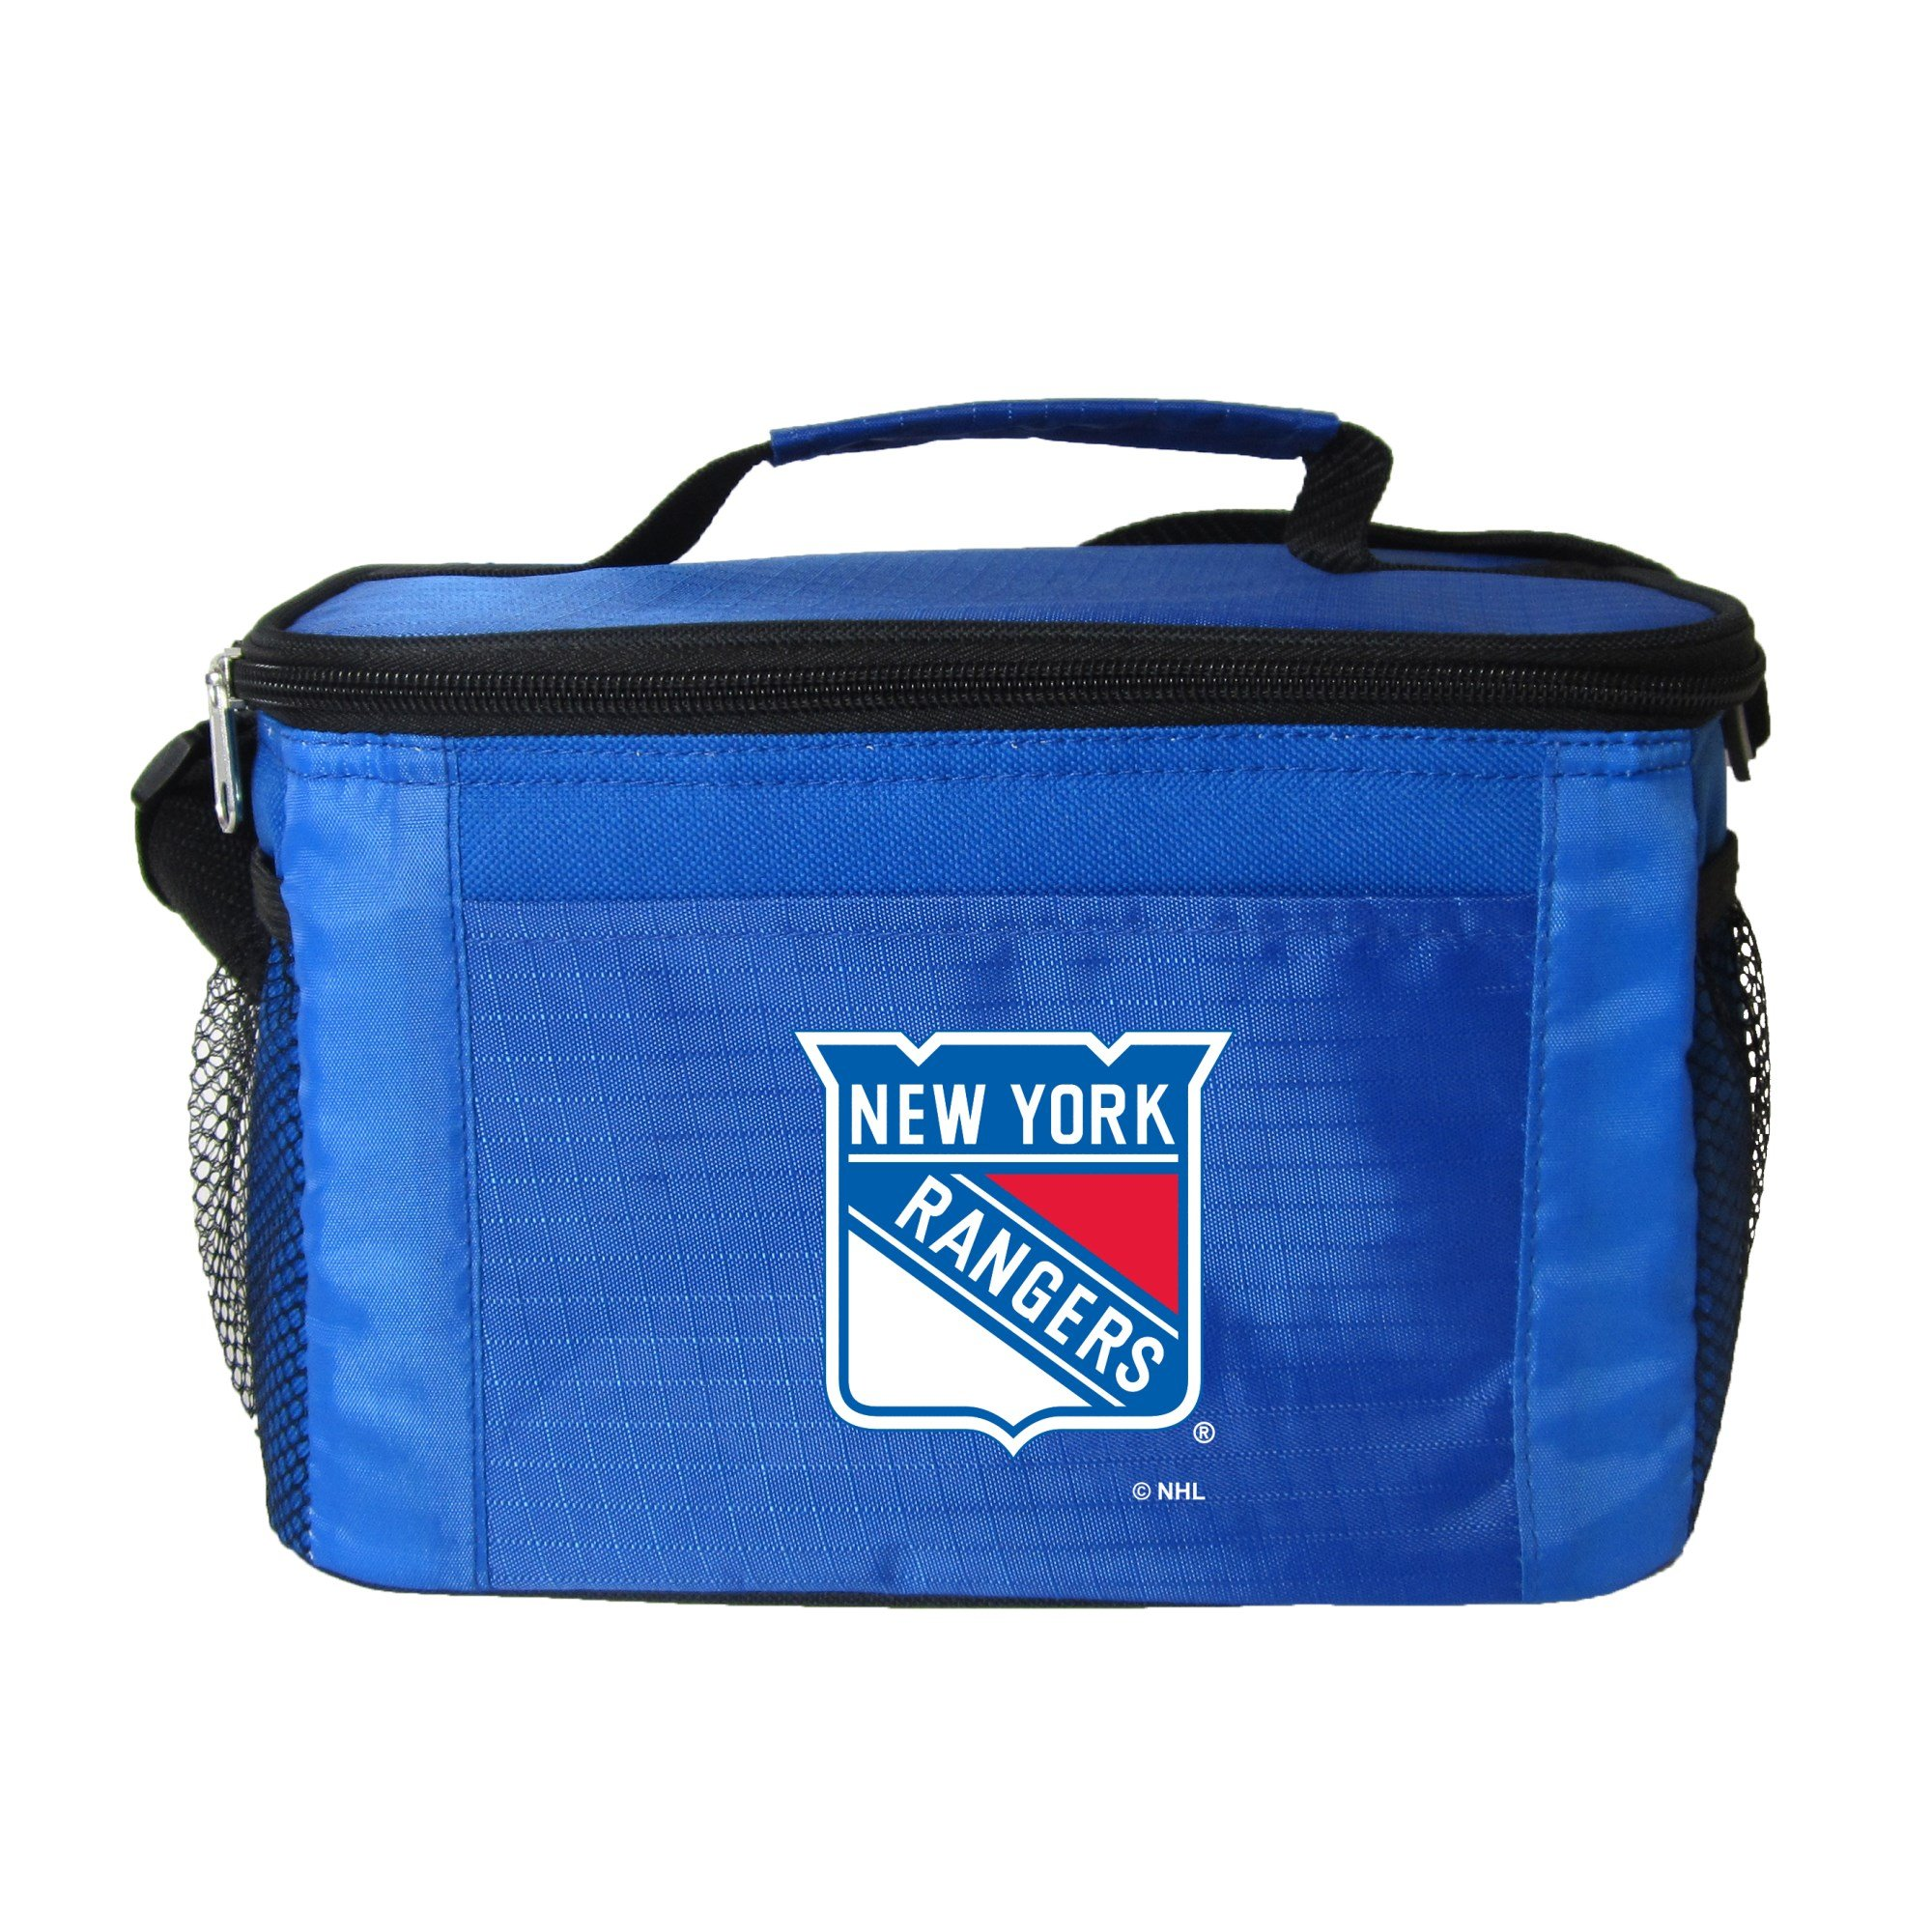 NHL New York Rangers Insulated Lunch Cooler Bag with Zipper Closure, Royal